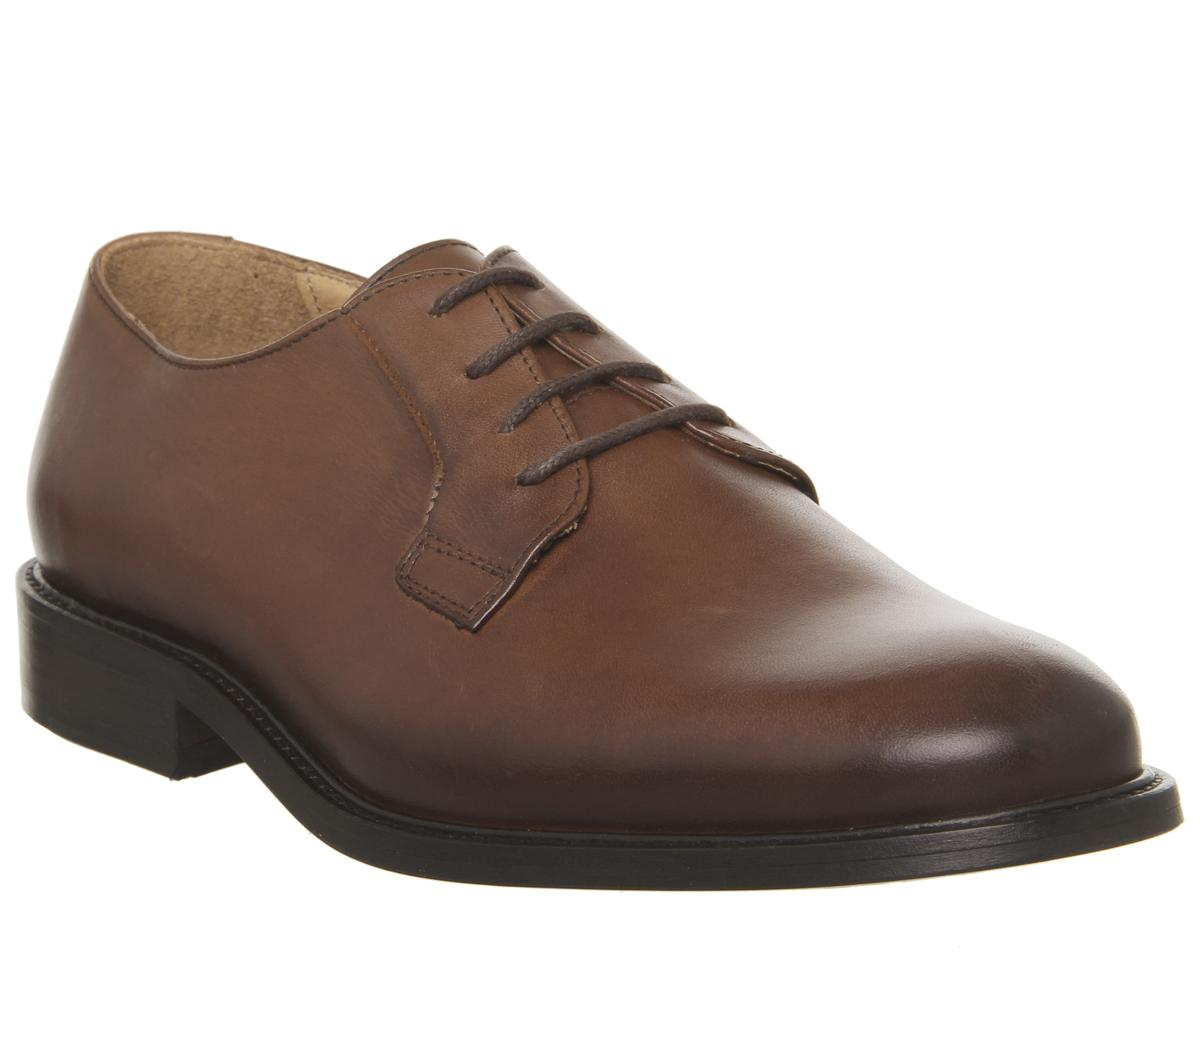 Immune Derby Shoes